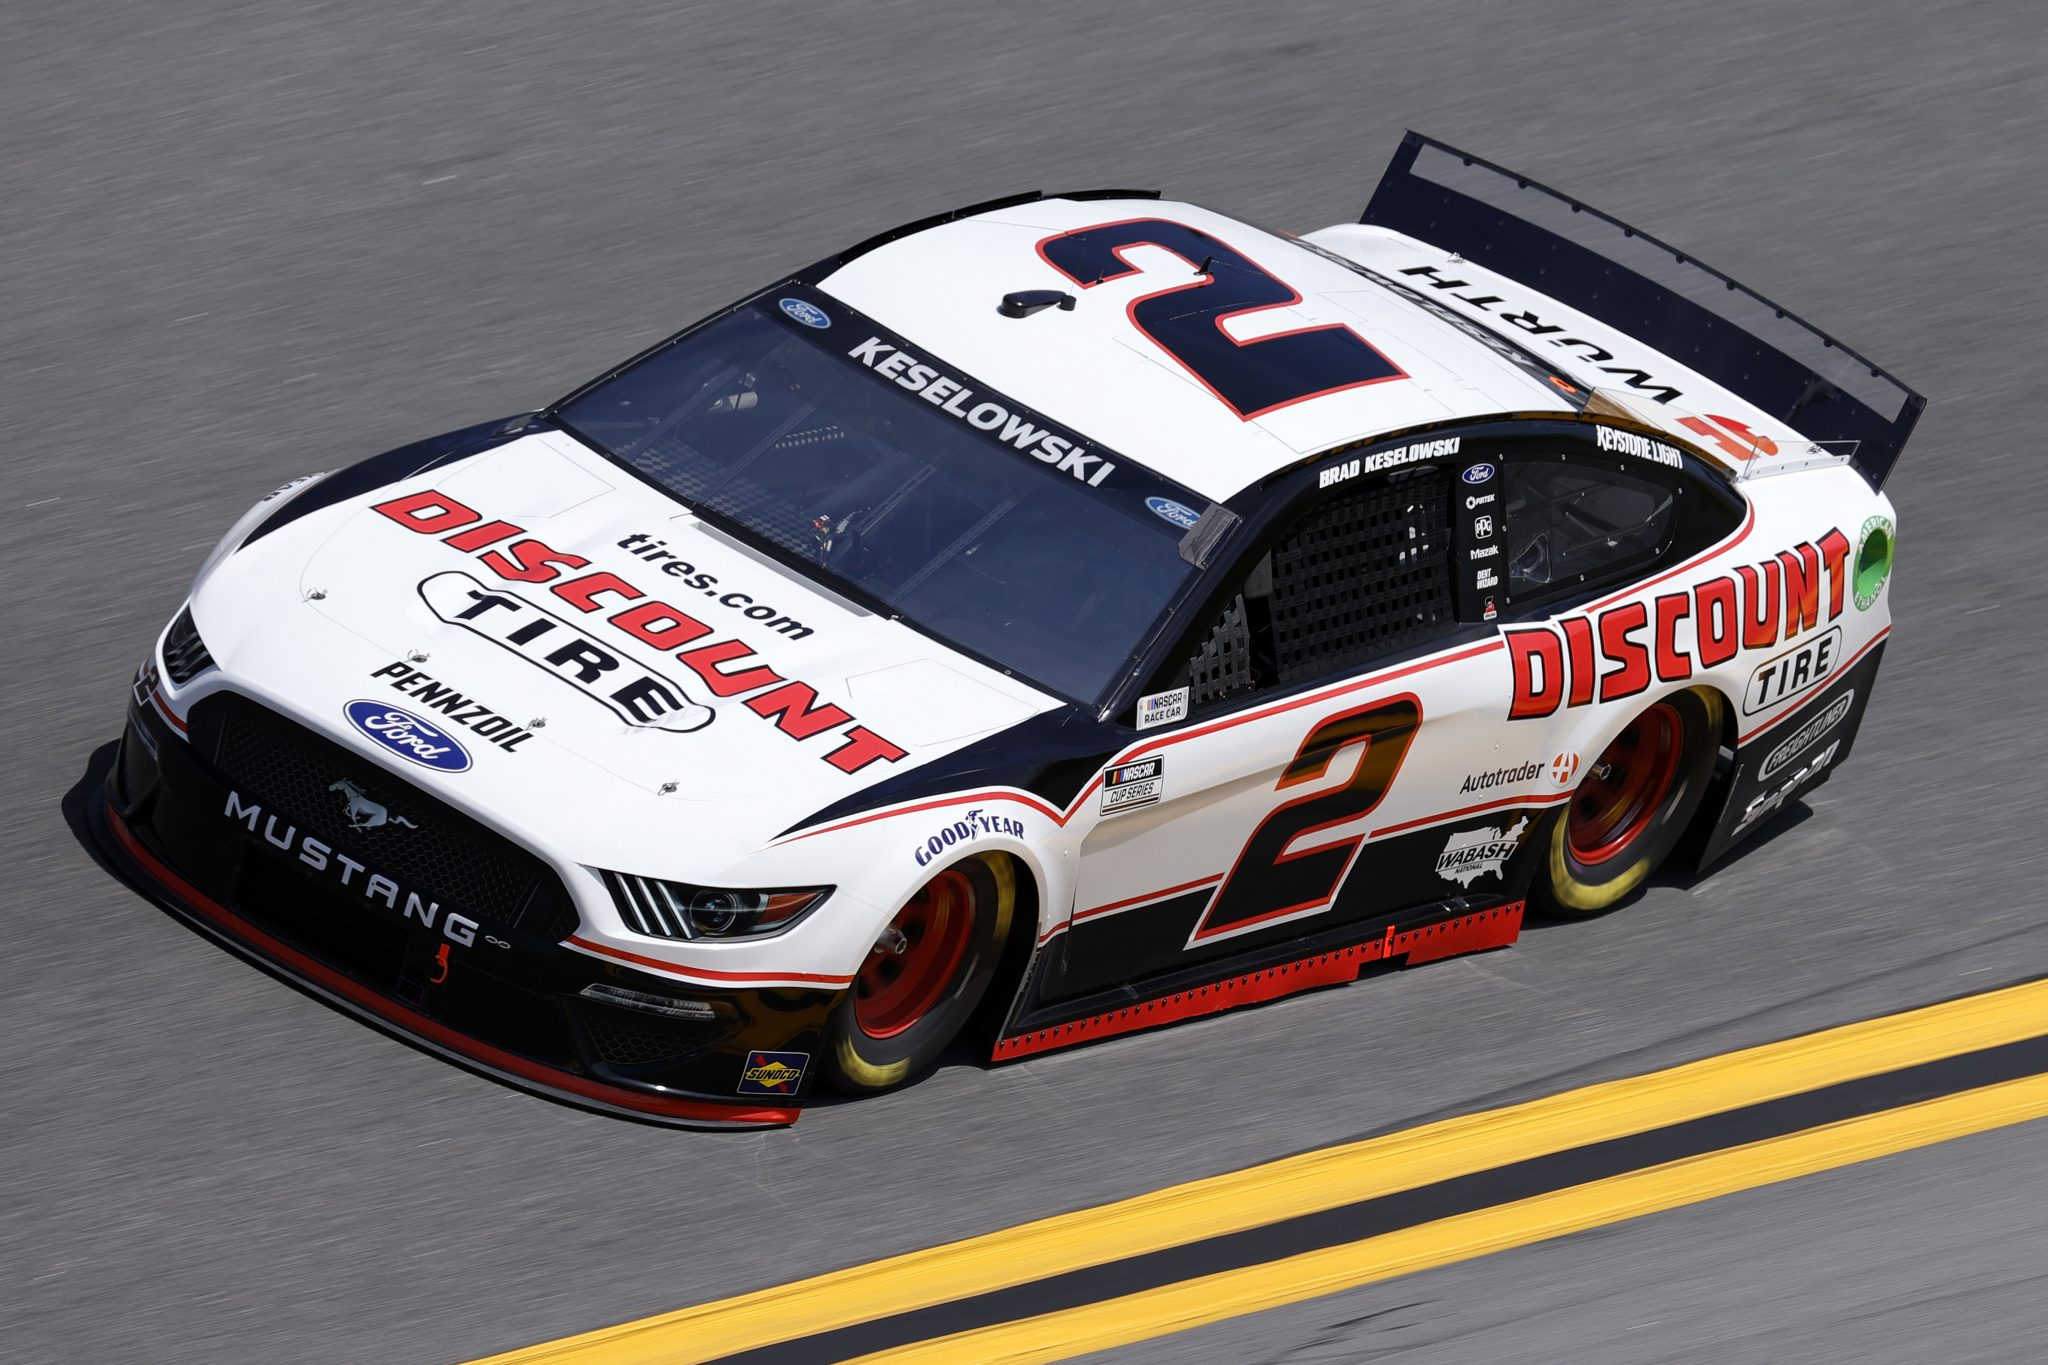 DAYTONA BEACH, FLORIDA - FEBRUARY 10: Brad Keselowski, driver of the #2 Discount Tire Ford, drives during practice for the NASCAR Cup Series 63rd Annual Daytona 500 at Daytona International Speedway on February 10, 2021 in Daytona Beach, Florida. (Photo by Jared C. Tilton/Getty Images) | Getty Images